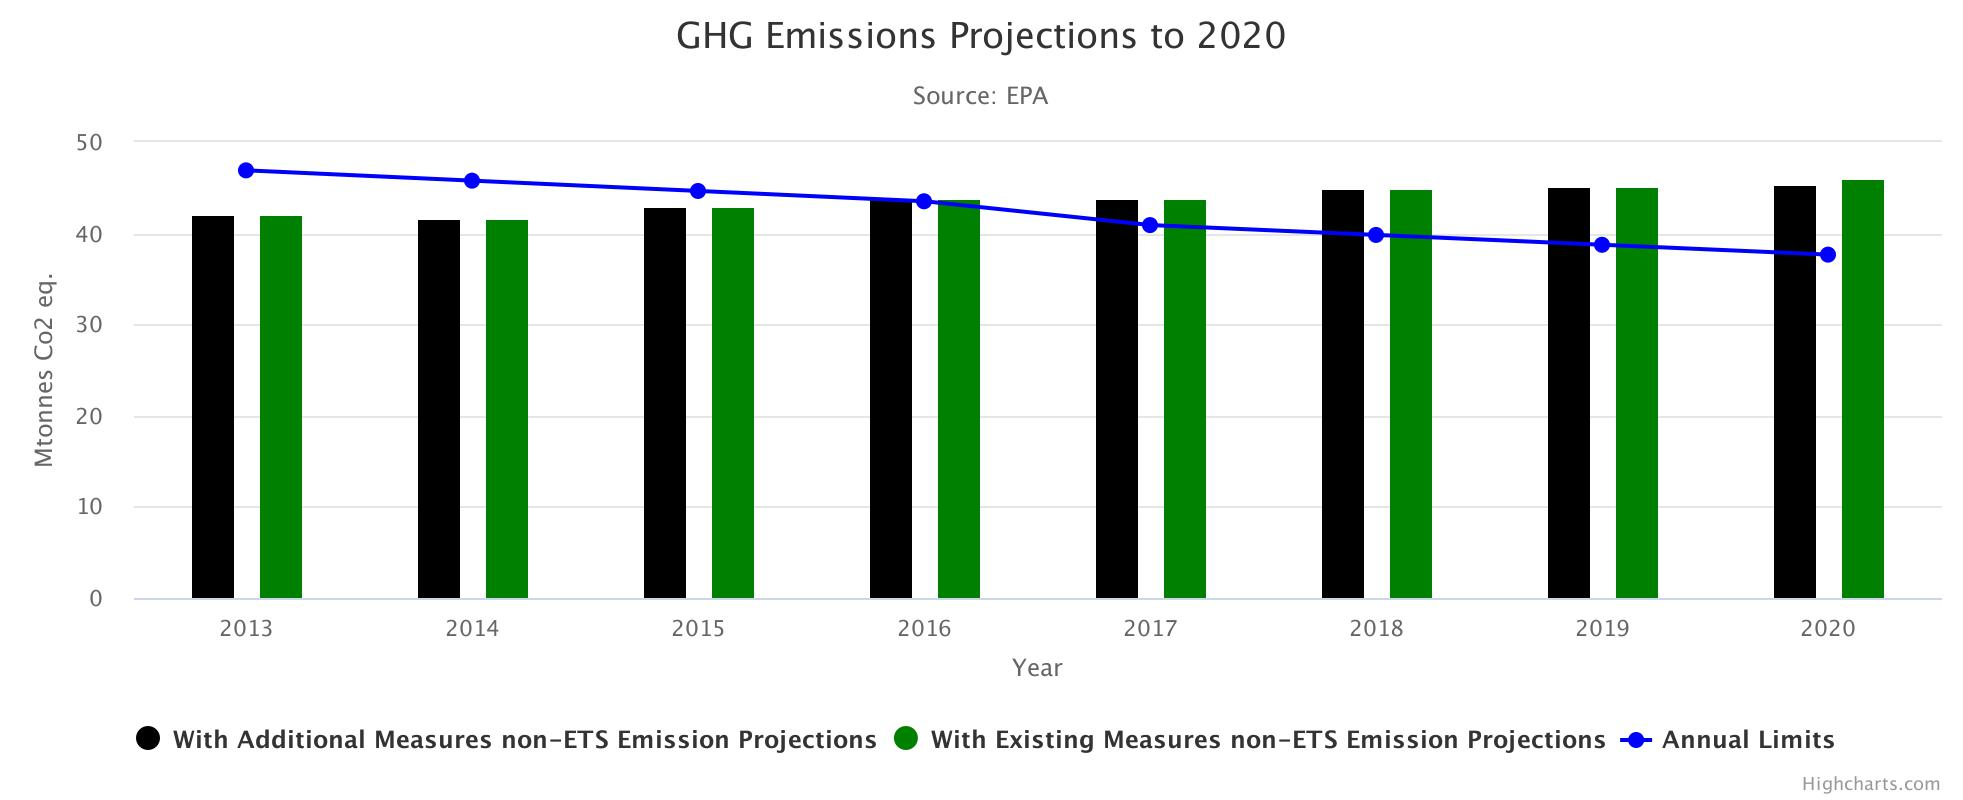 GHG Emissions Projections to 2020 HighChart Image